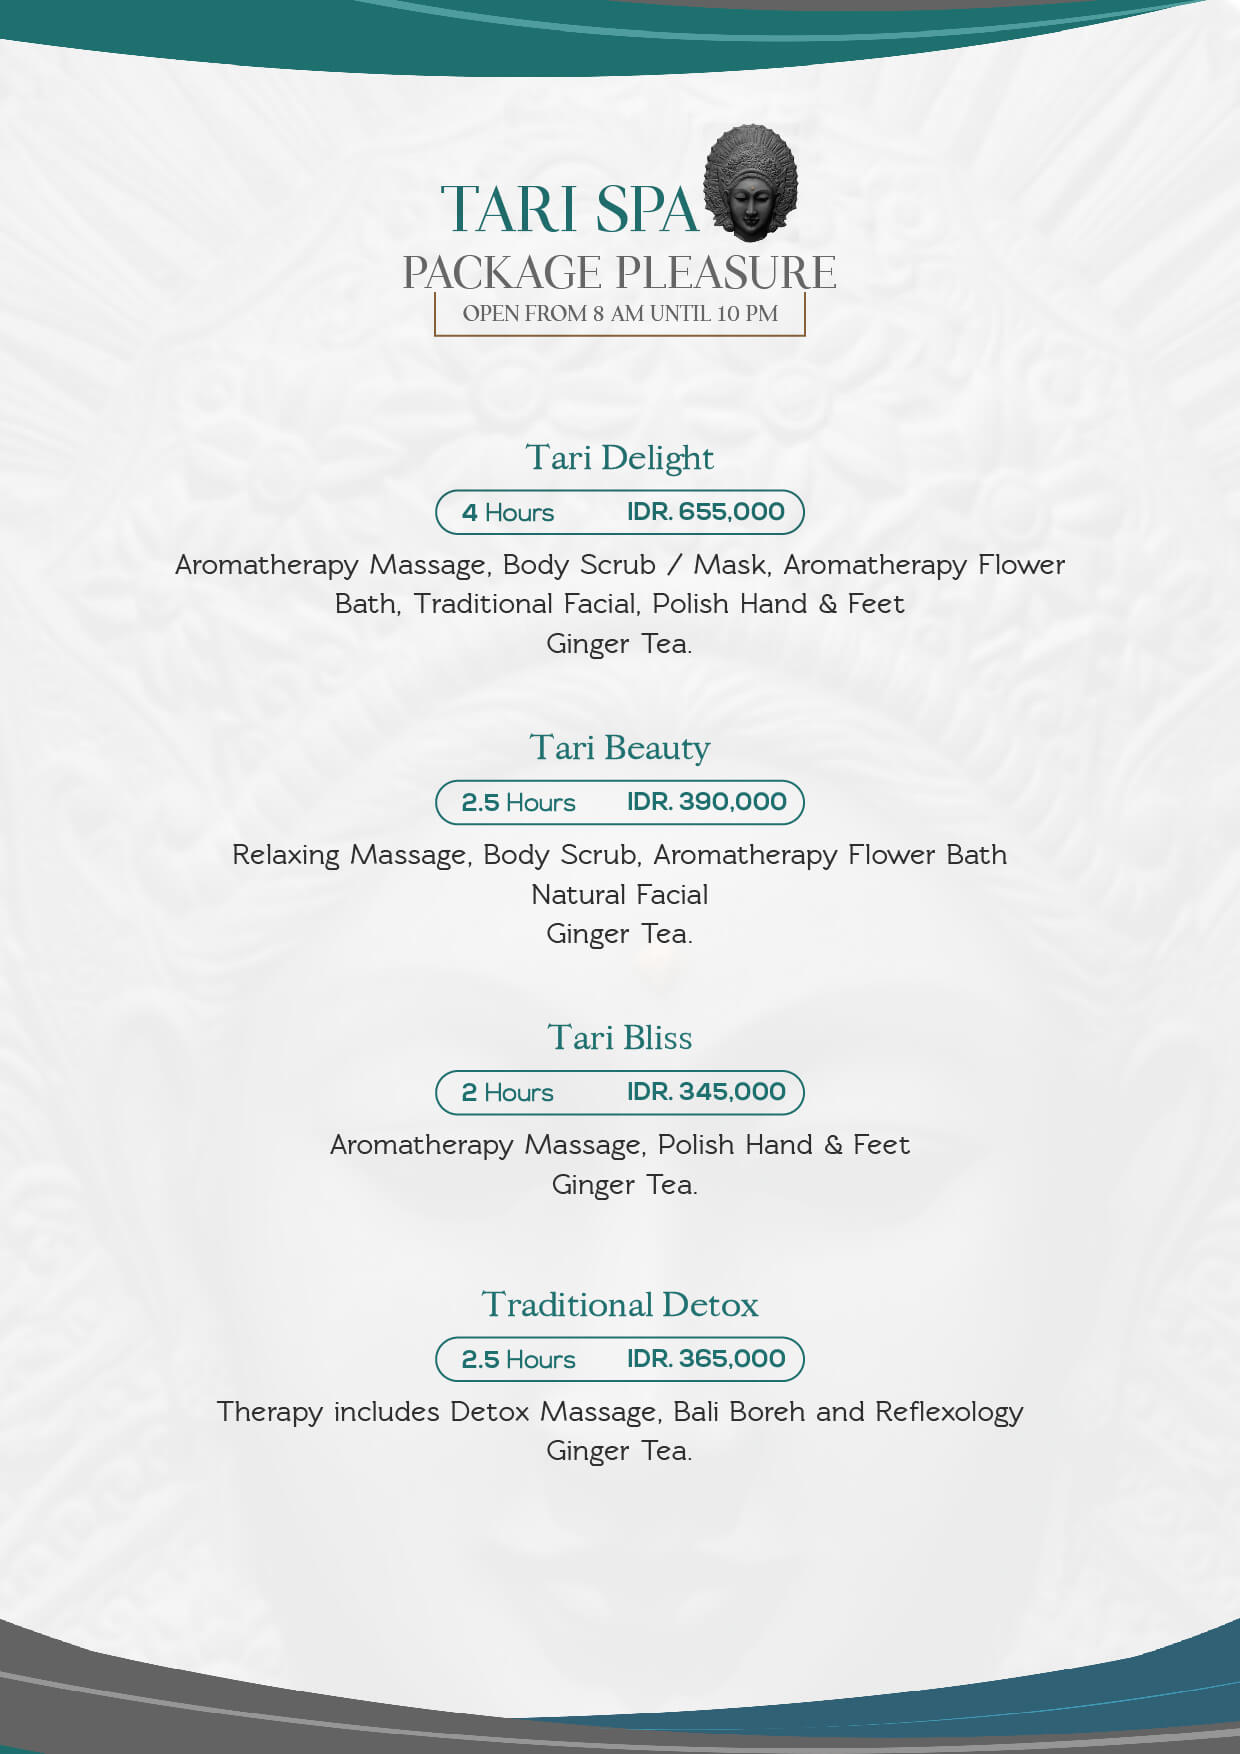 Tari spa spa of bali garden beach resort menu package pleasure xflitez Images